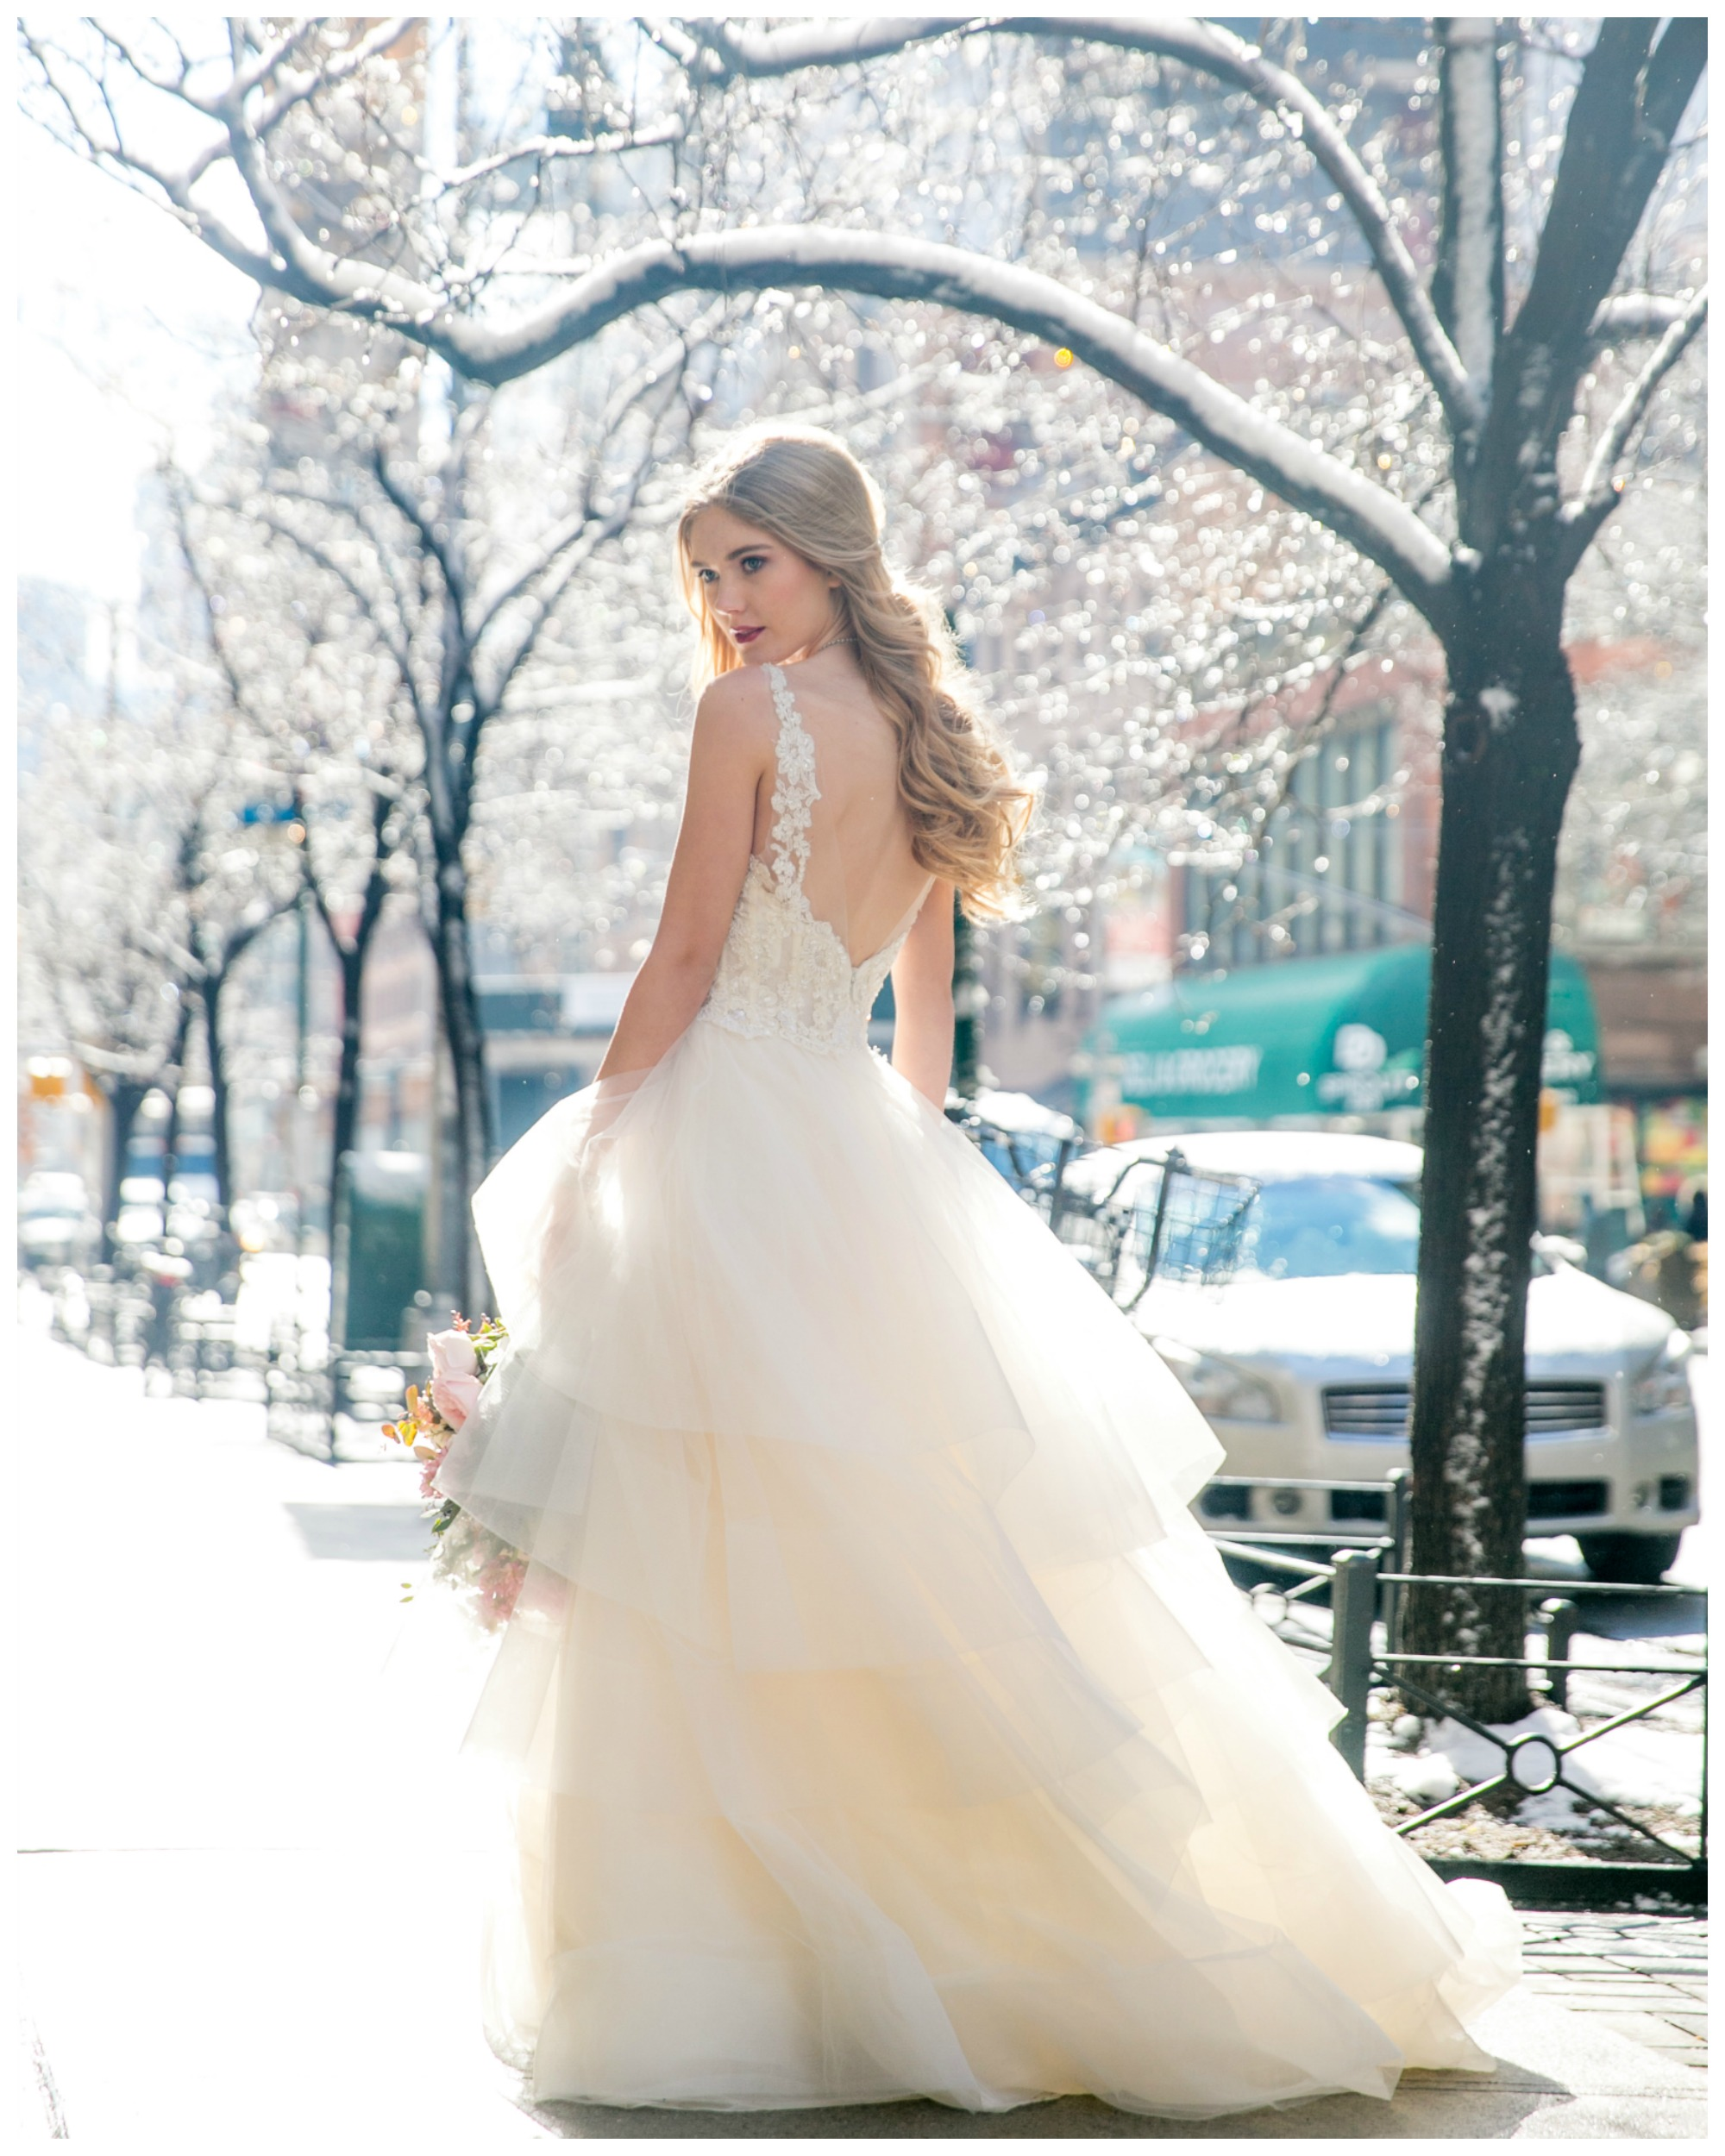 Bride in full ball gown with open back, long blond hair curled, posing on a snowy street in New York City